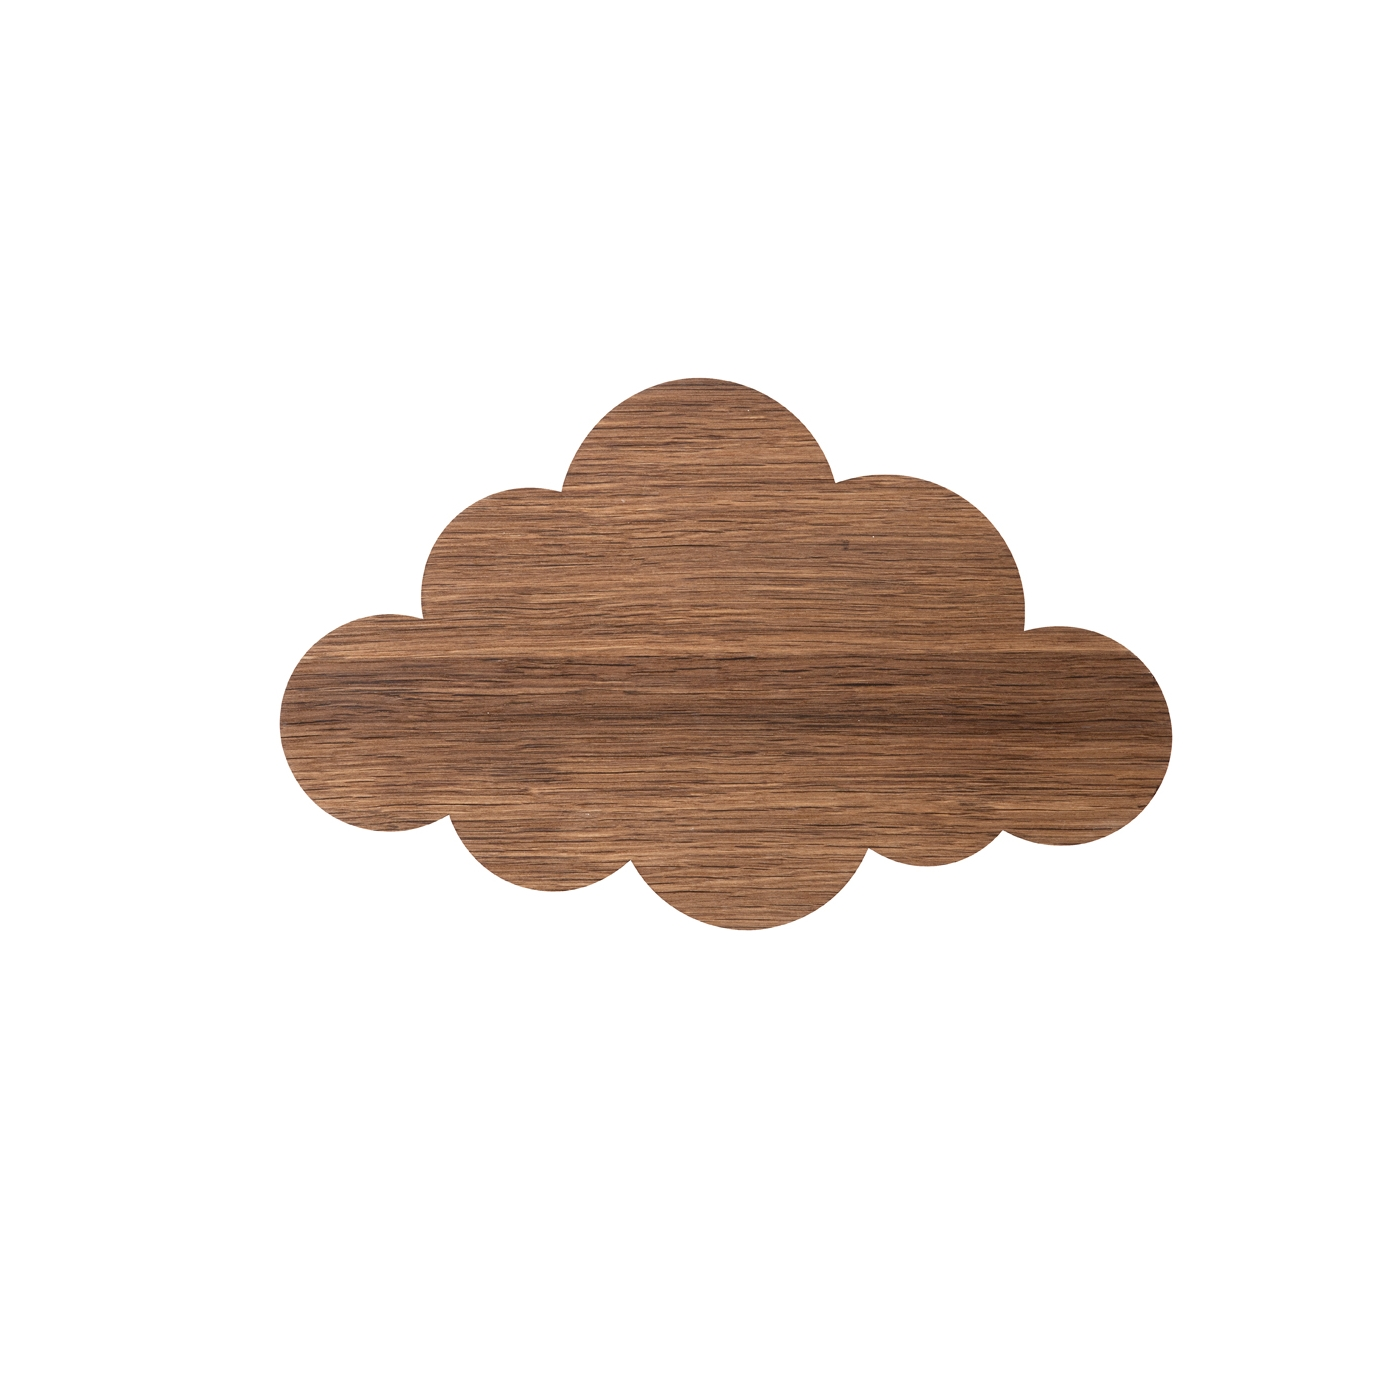 Barnlampa Cloud smoked oak, Ferm Living